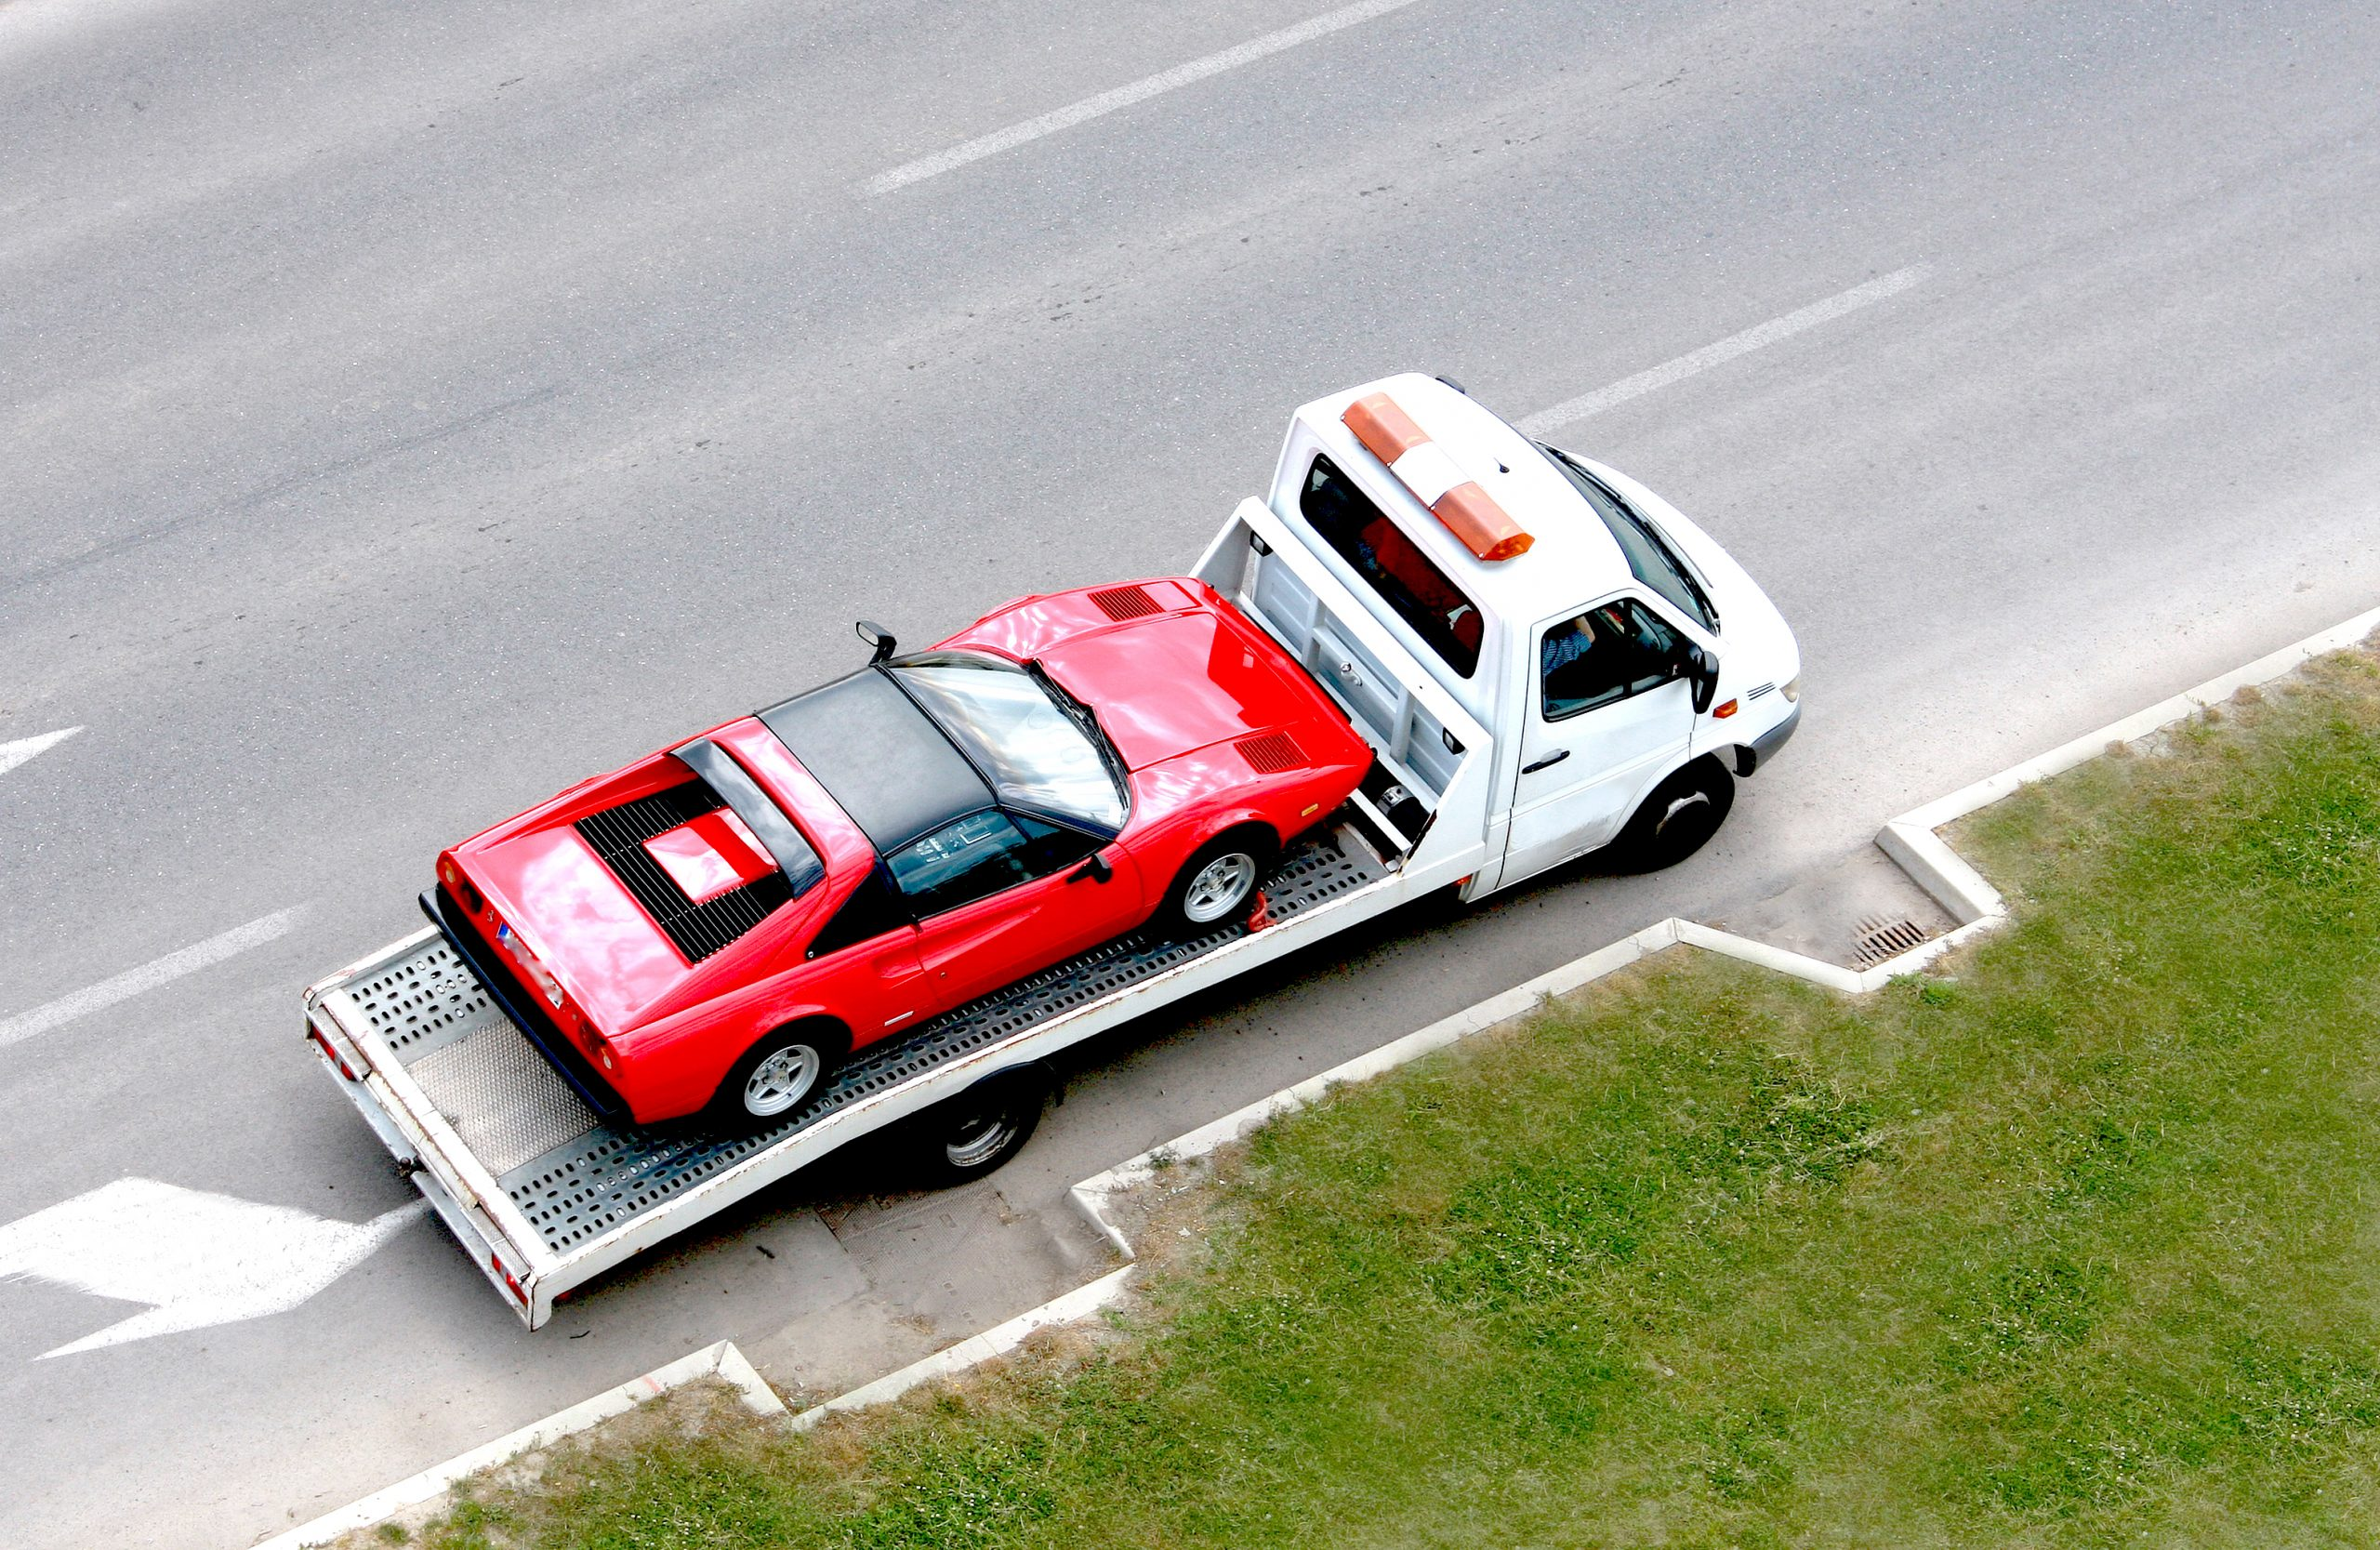 Sports car towing